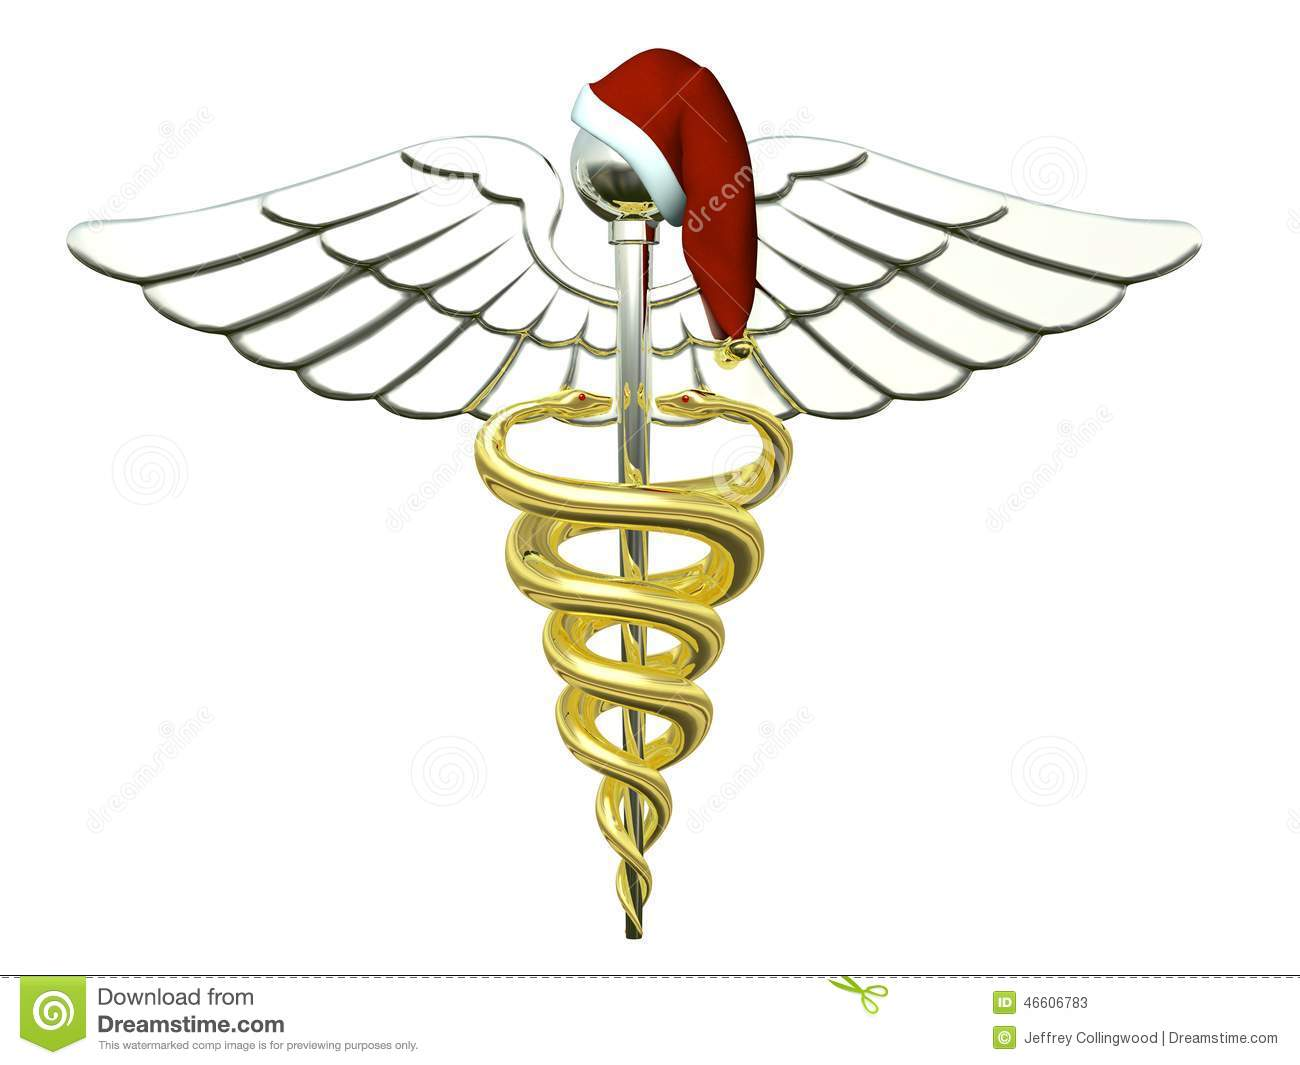 Caduceus medical symbol stock photos royalty free images a gold and silver caduceus medical symbol wearing a santa hat for christmas buycottarizona Gallery